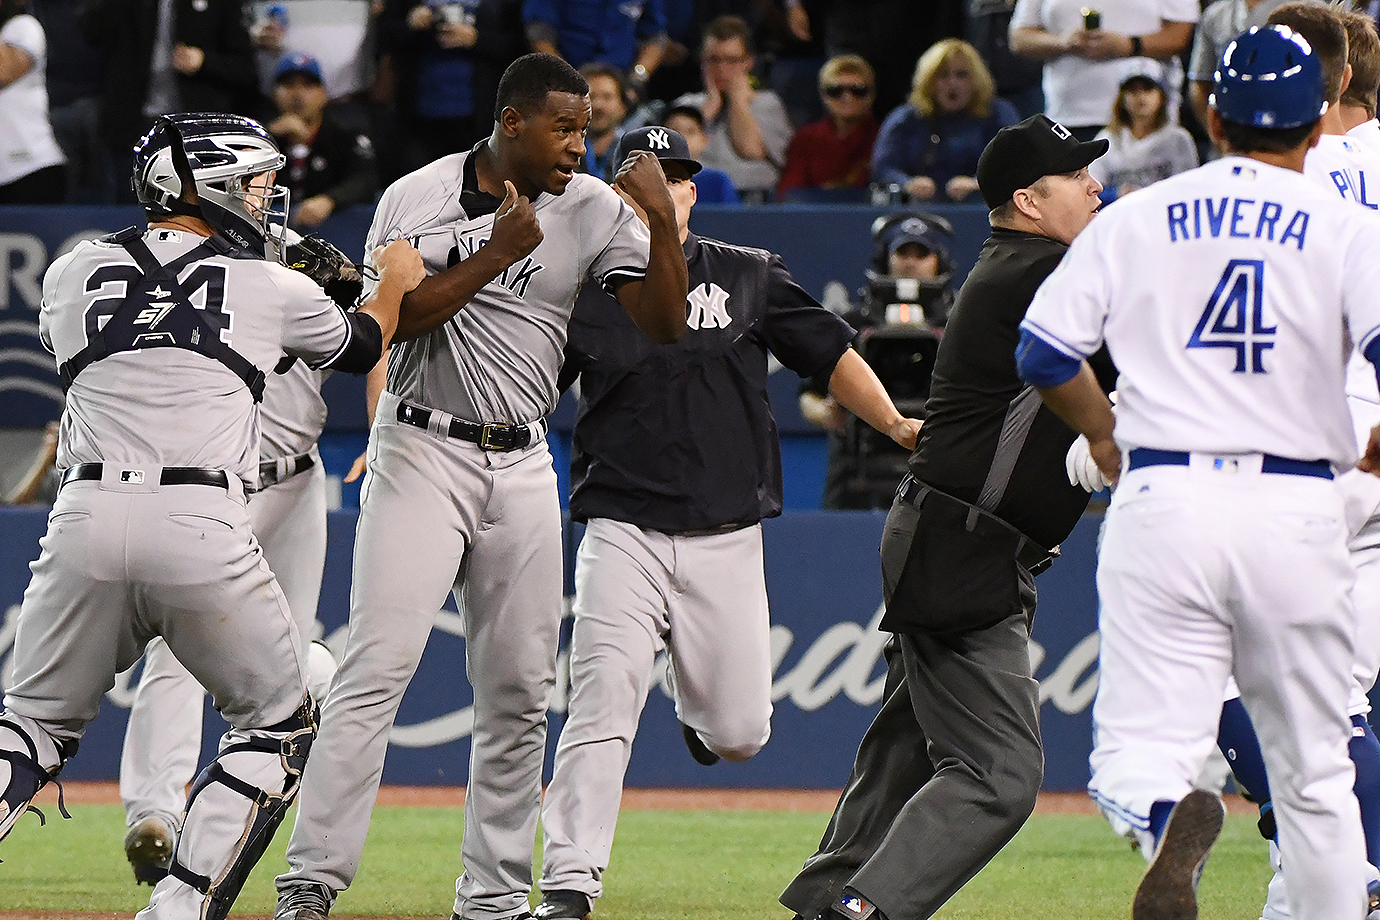 The Yankees and Blue Jays brawled after a series of hit-by-pitches. The scuffle came directly after New York's Luis Severino plunked Justin Smoak.